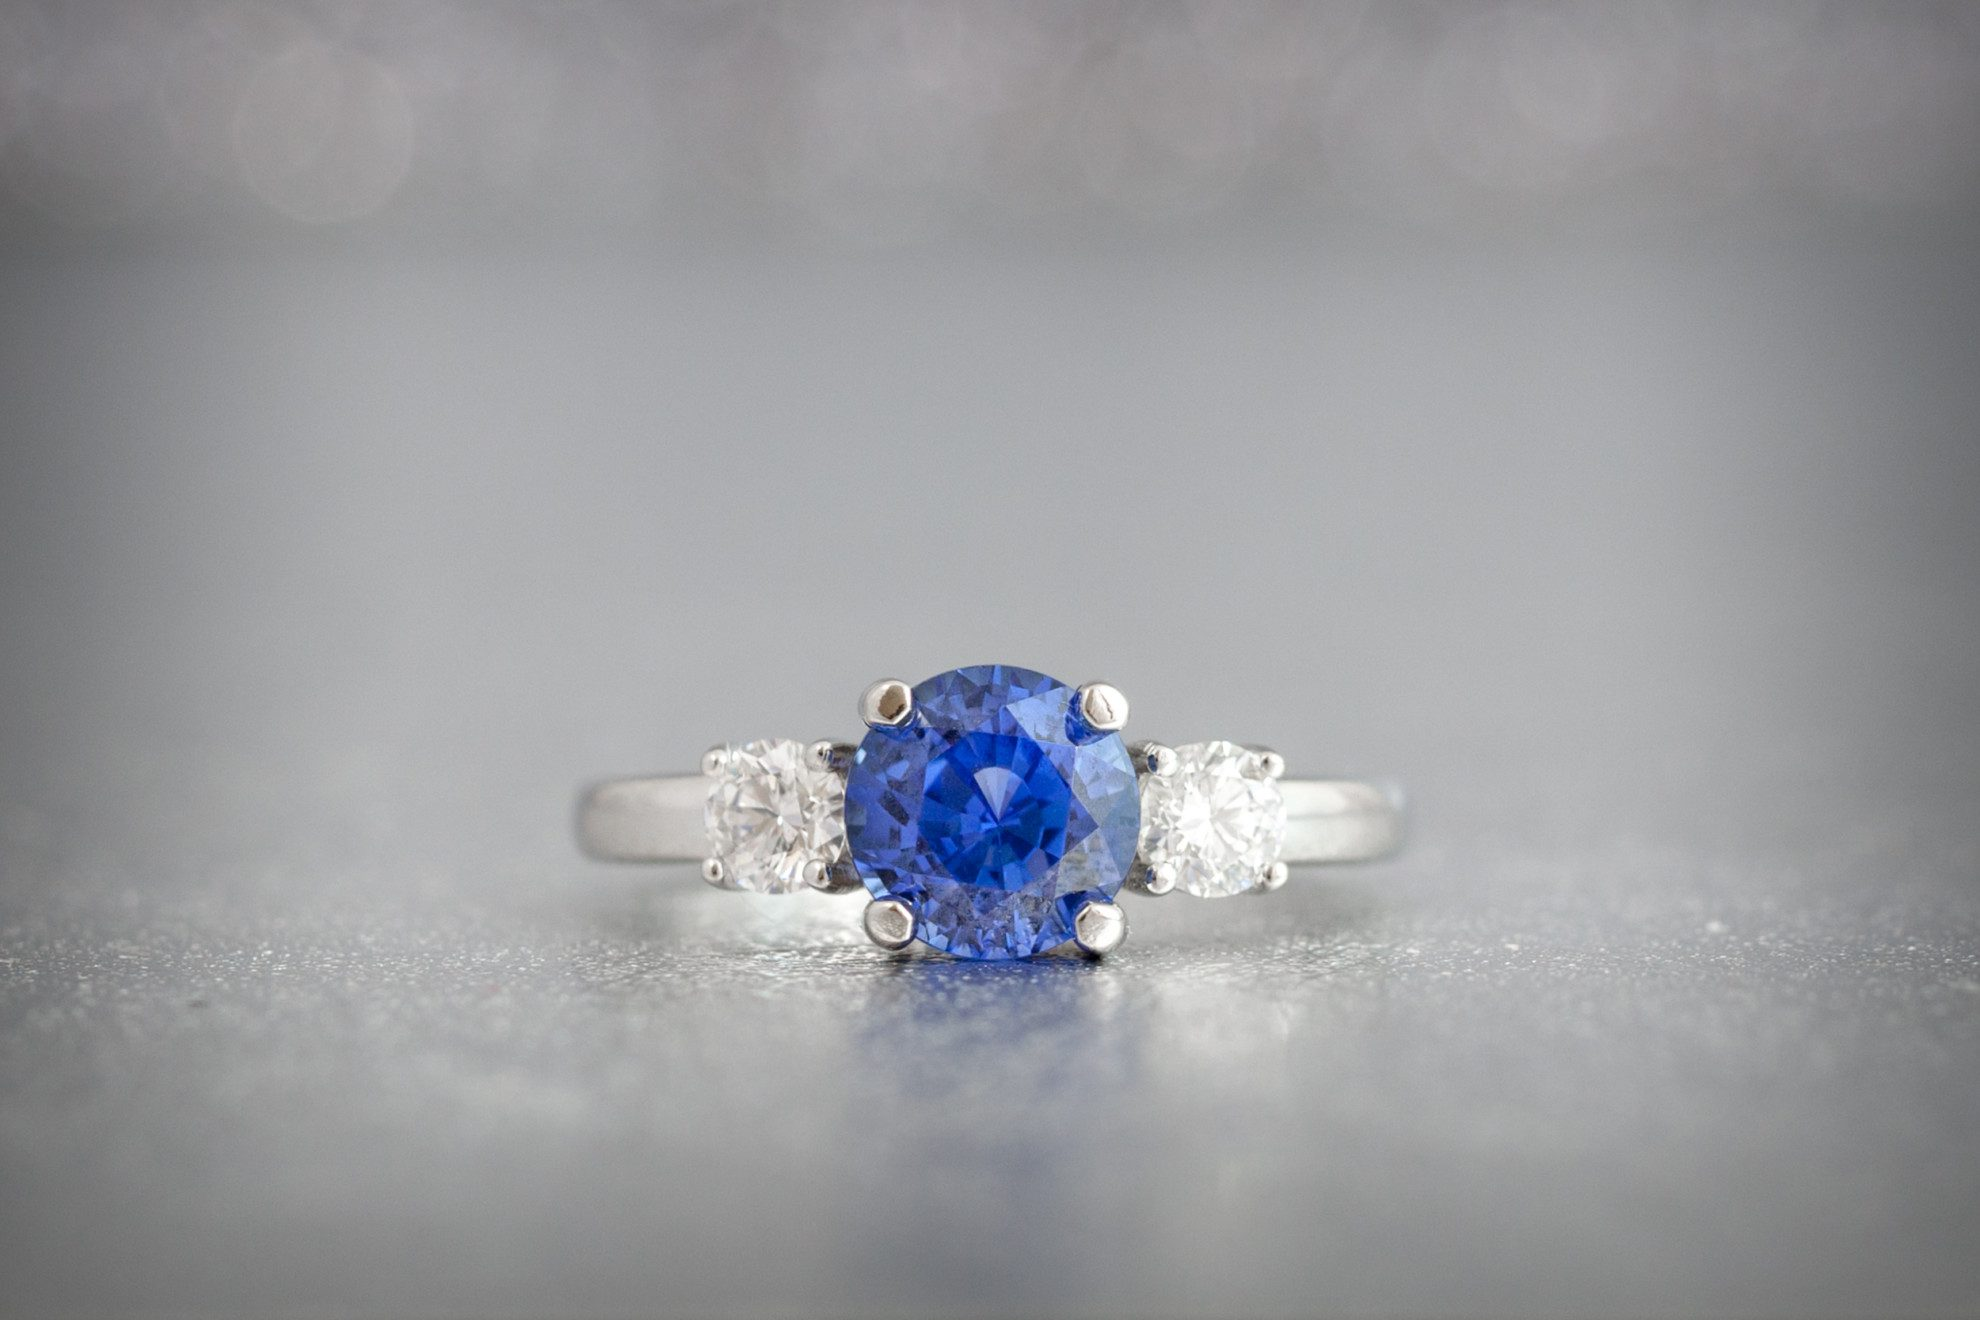 engagement and dark some variations sapphire rings blue considered can be